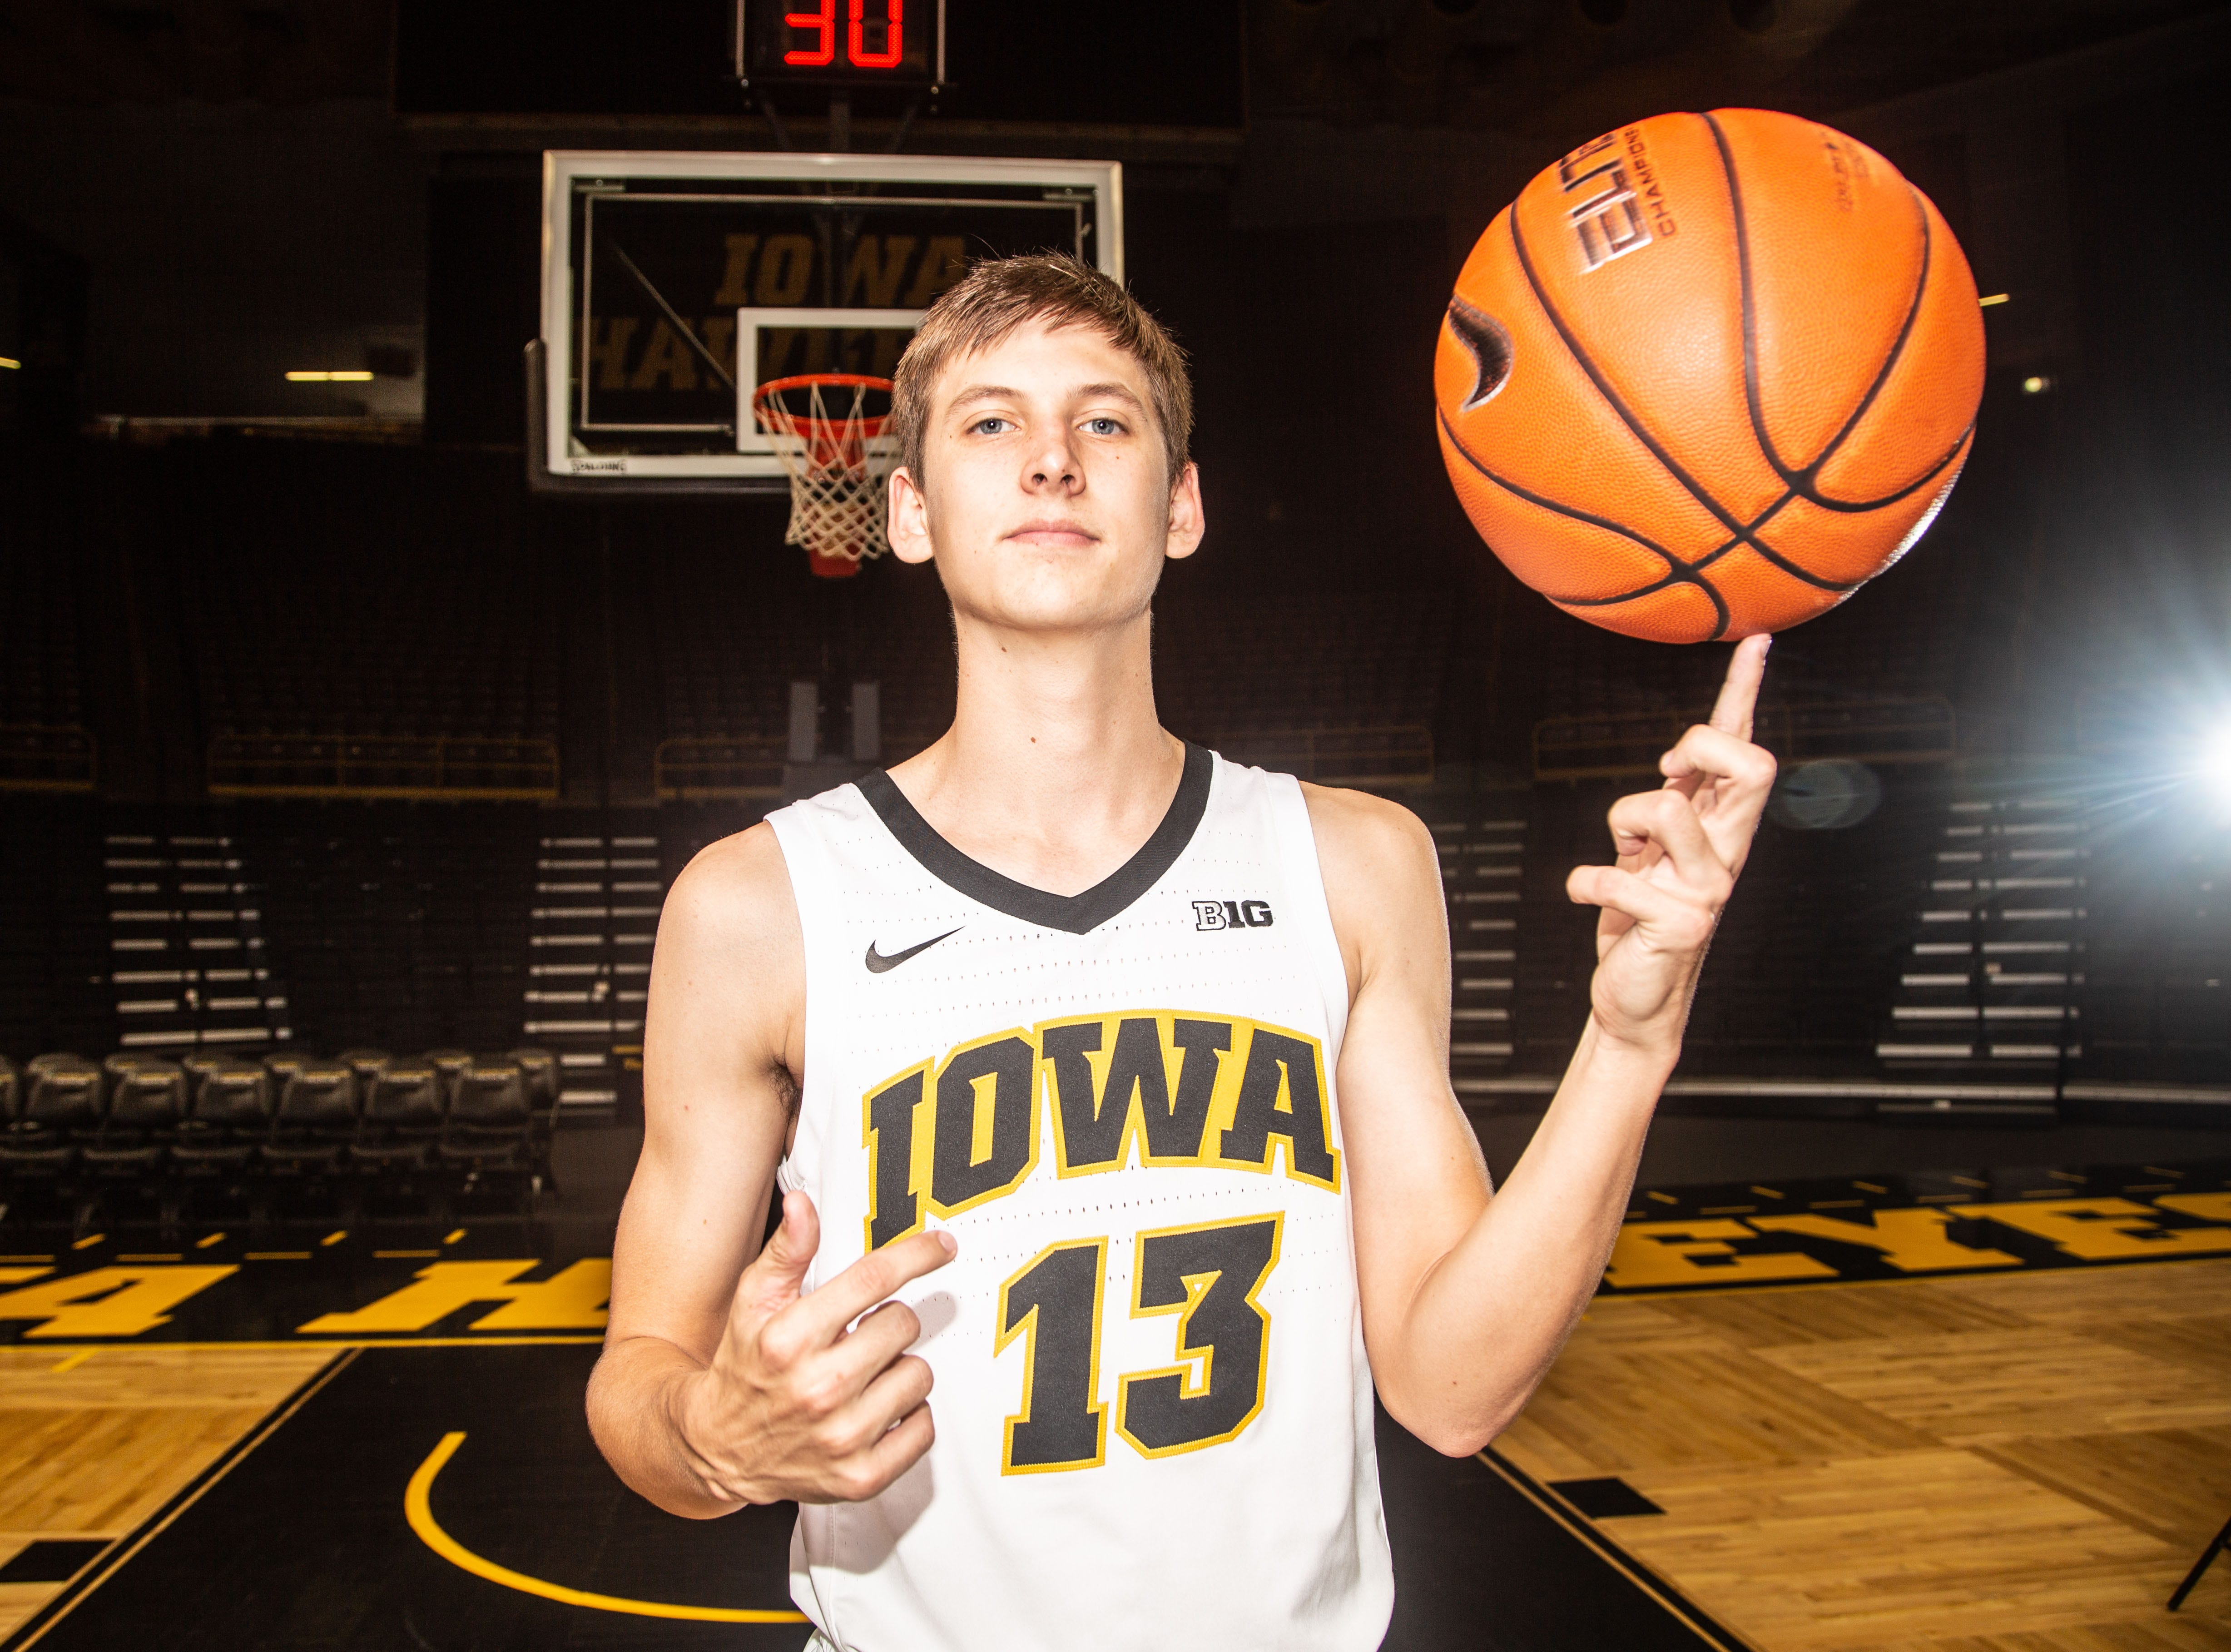 Iowa guard Austin Ash poses for a photo during Hawkeye media day at Carver Hawkeye ArenaMonday, Oct. 8, 2018.